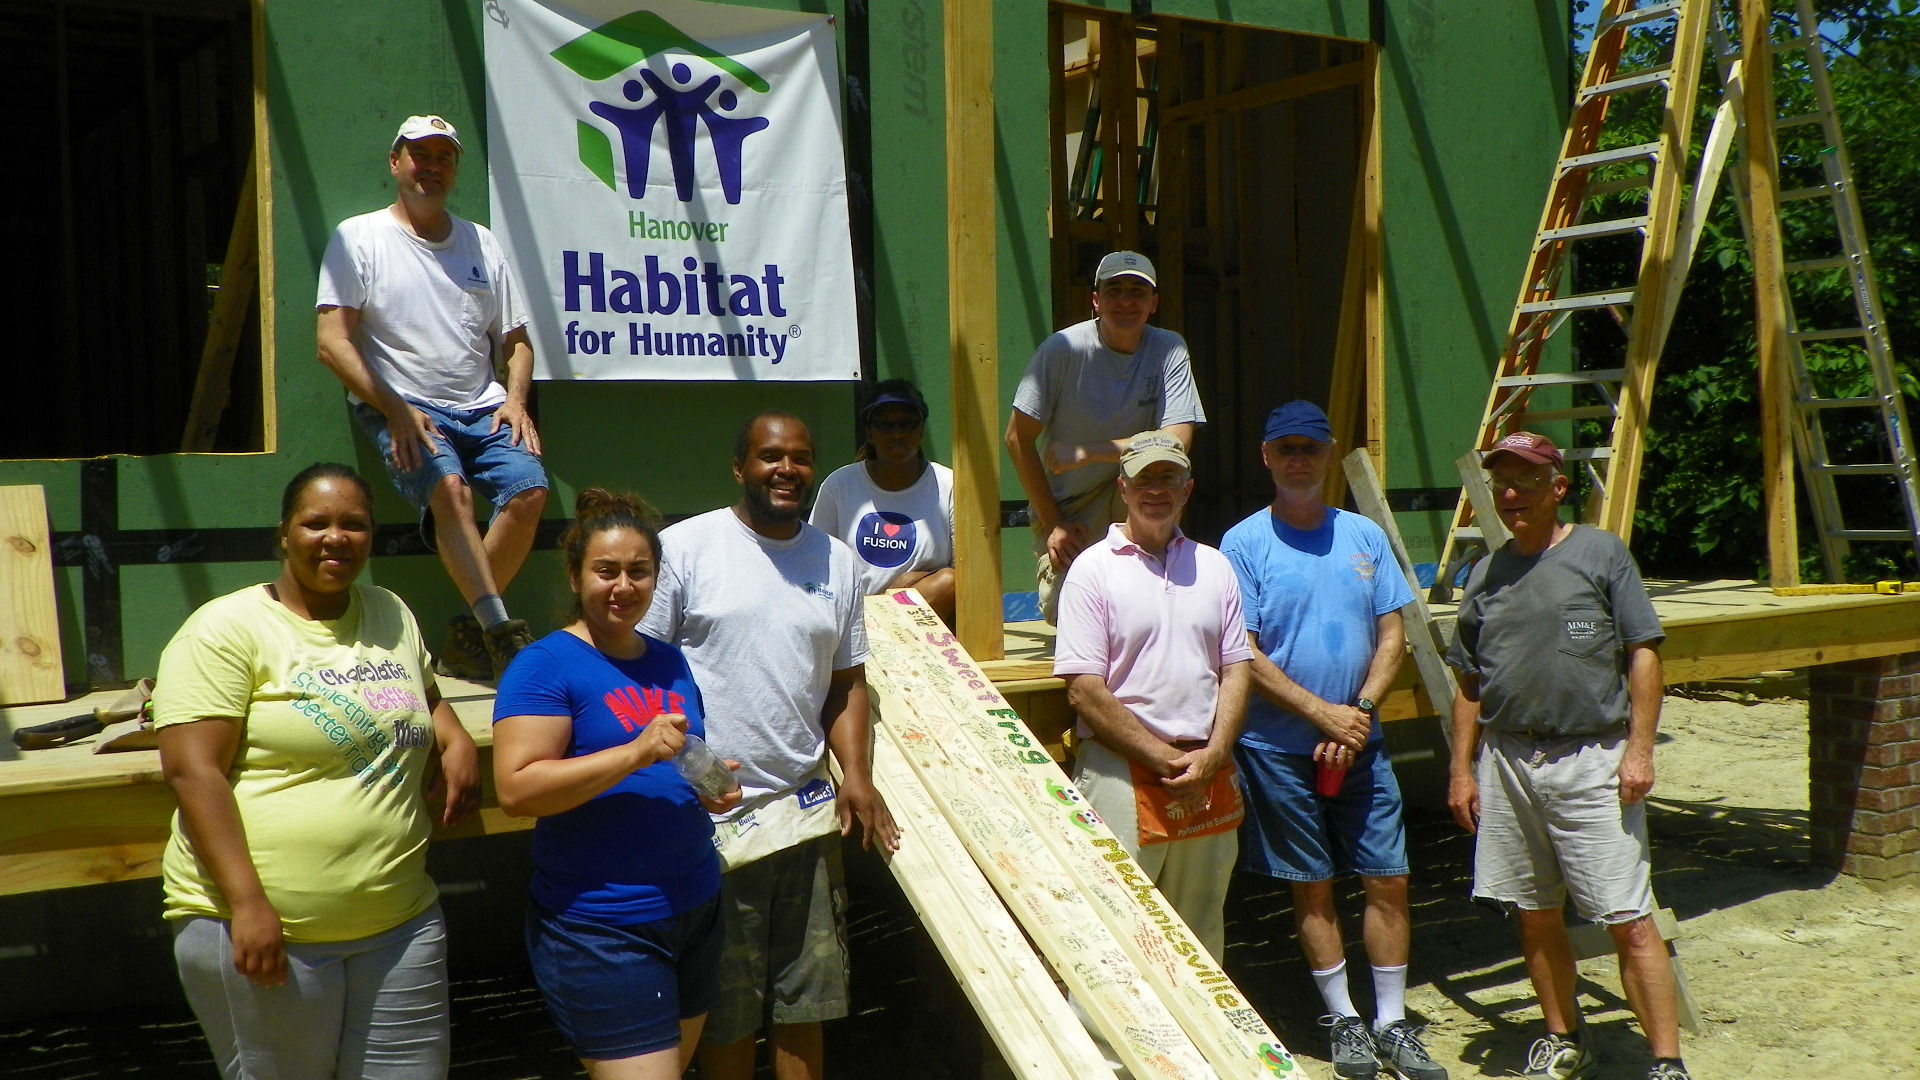 Habitat for Humanity, June 1